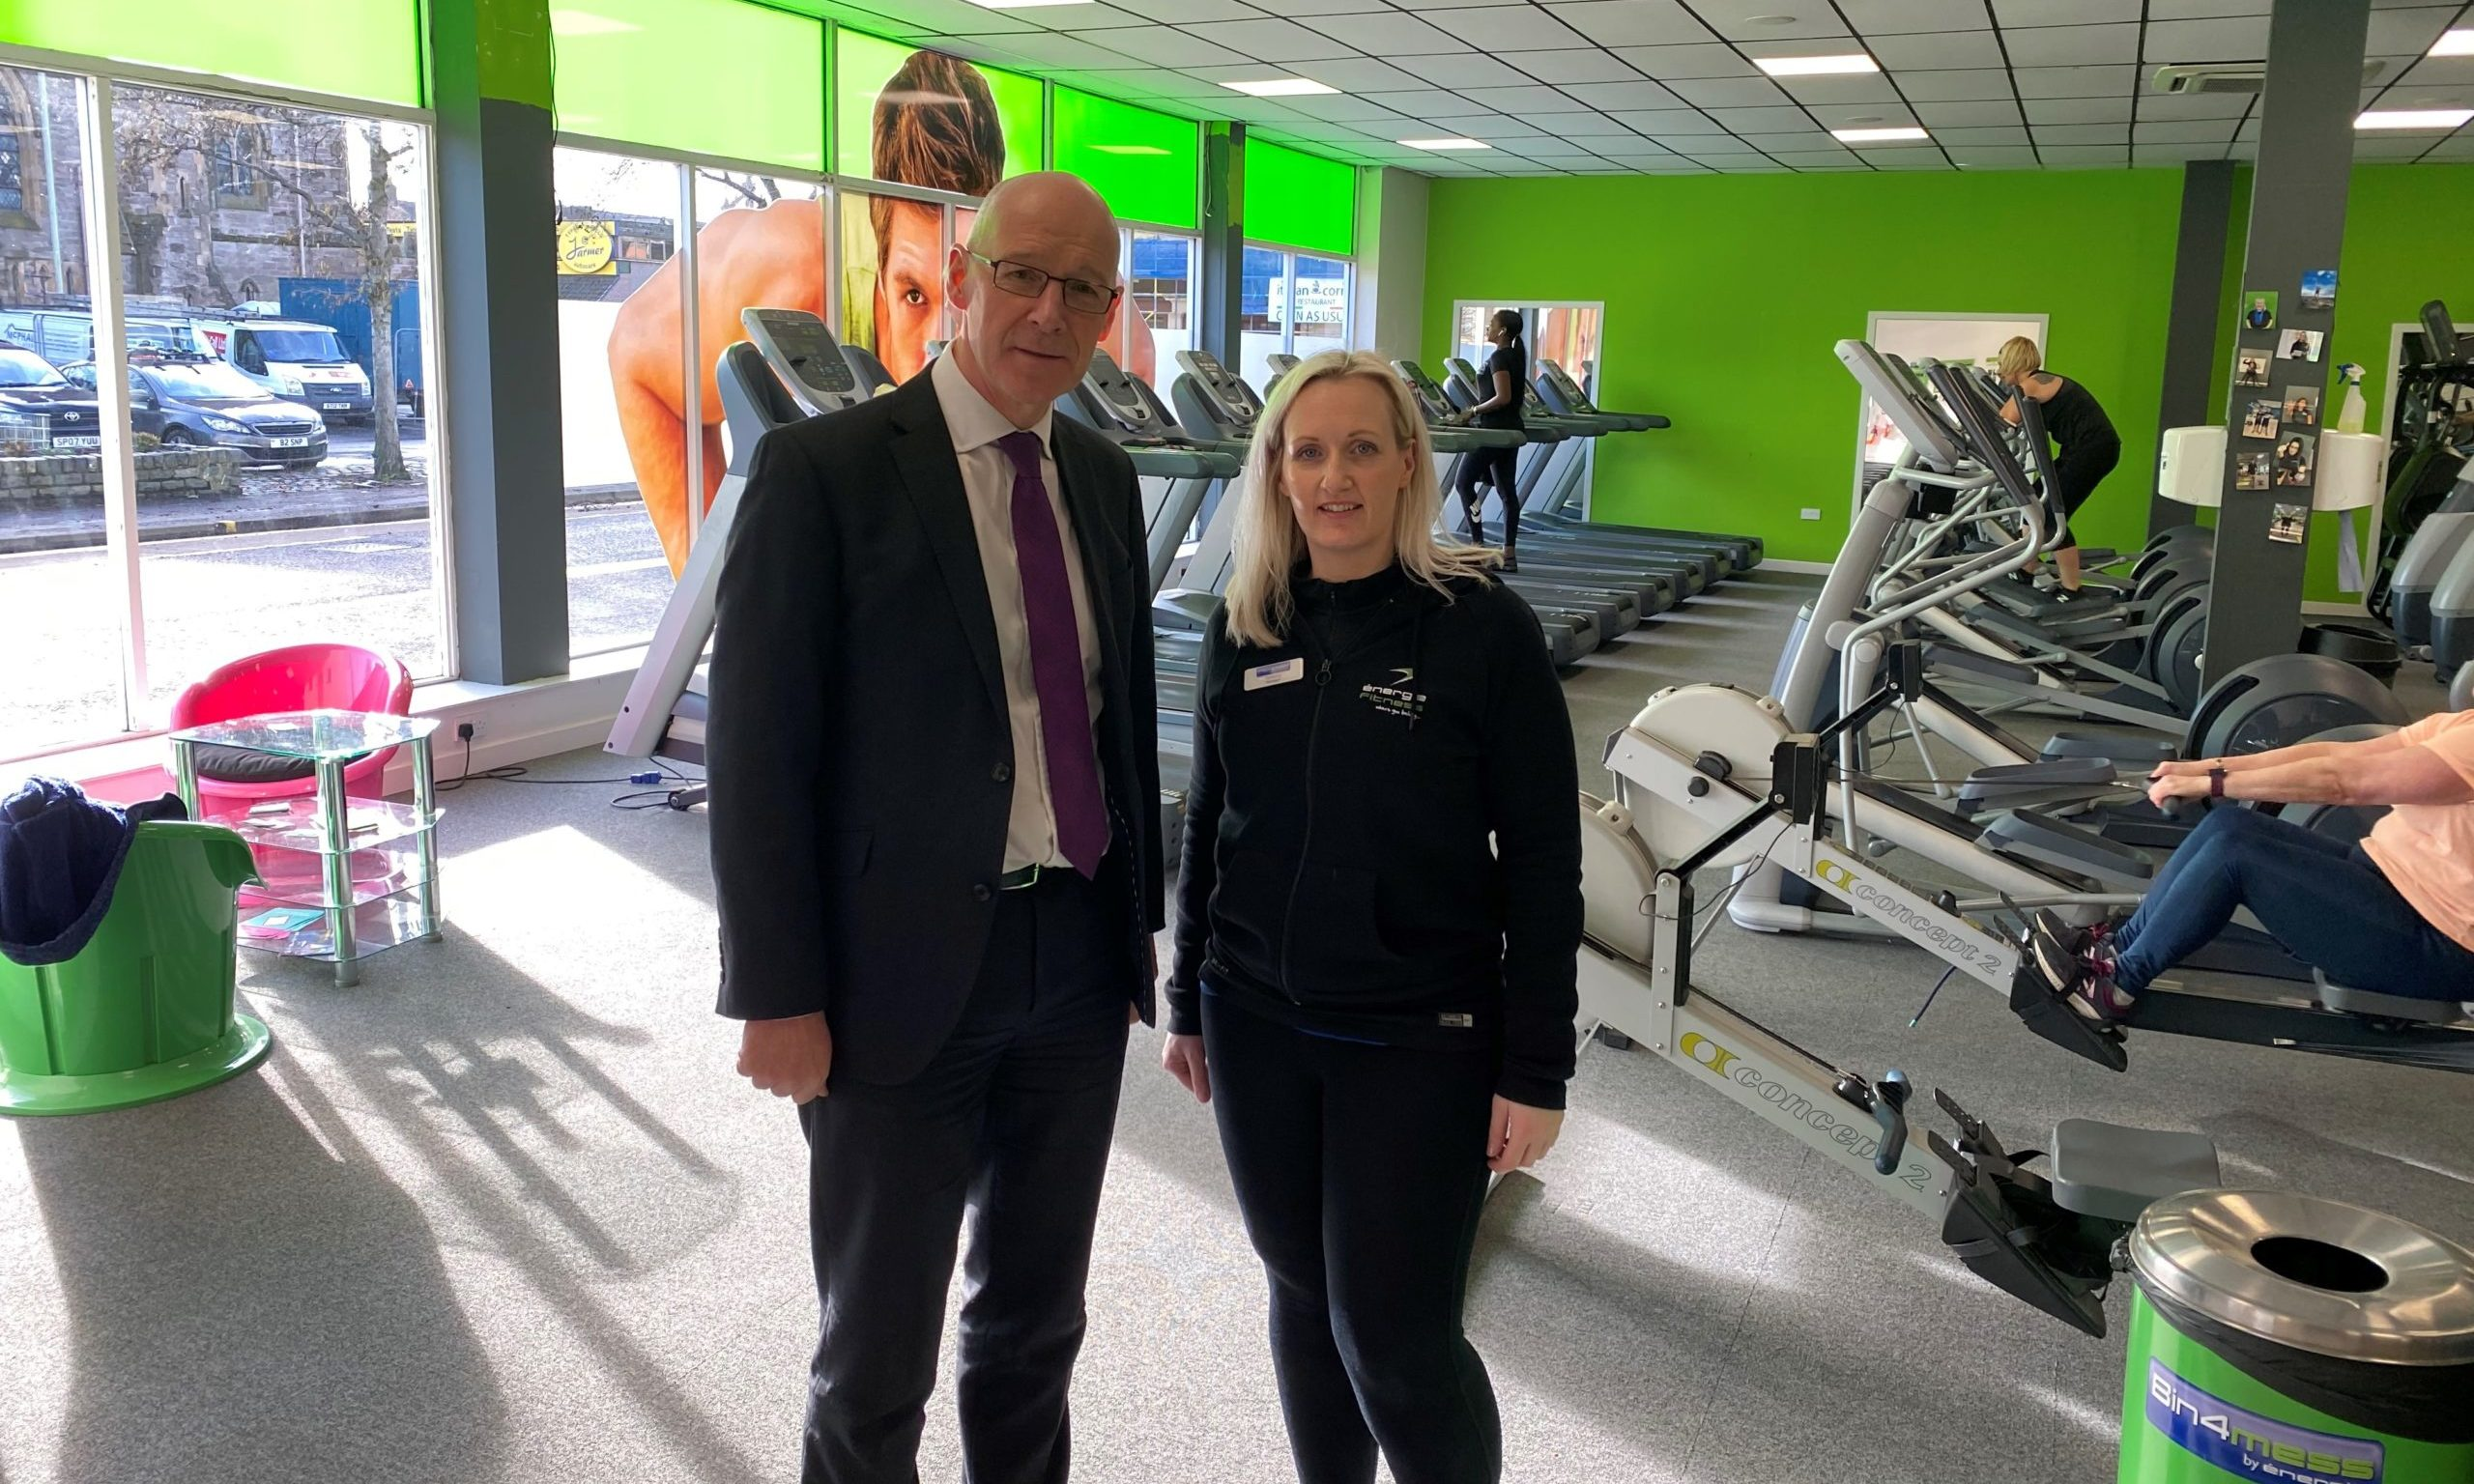 John Swinney MSP and manager Tammy Fleuchar want to see the gym saved.